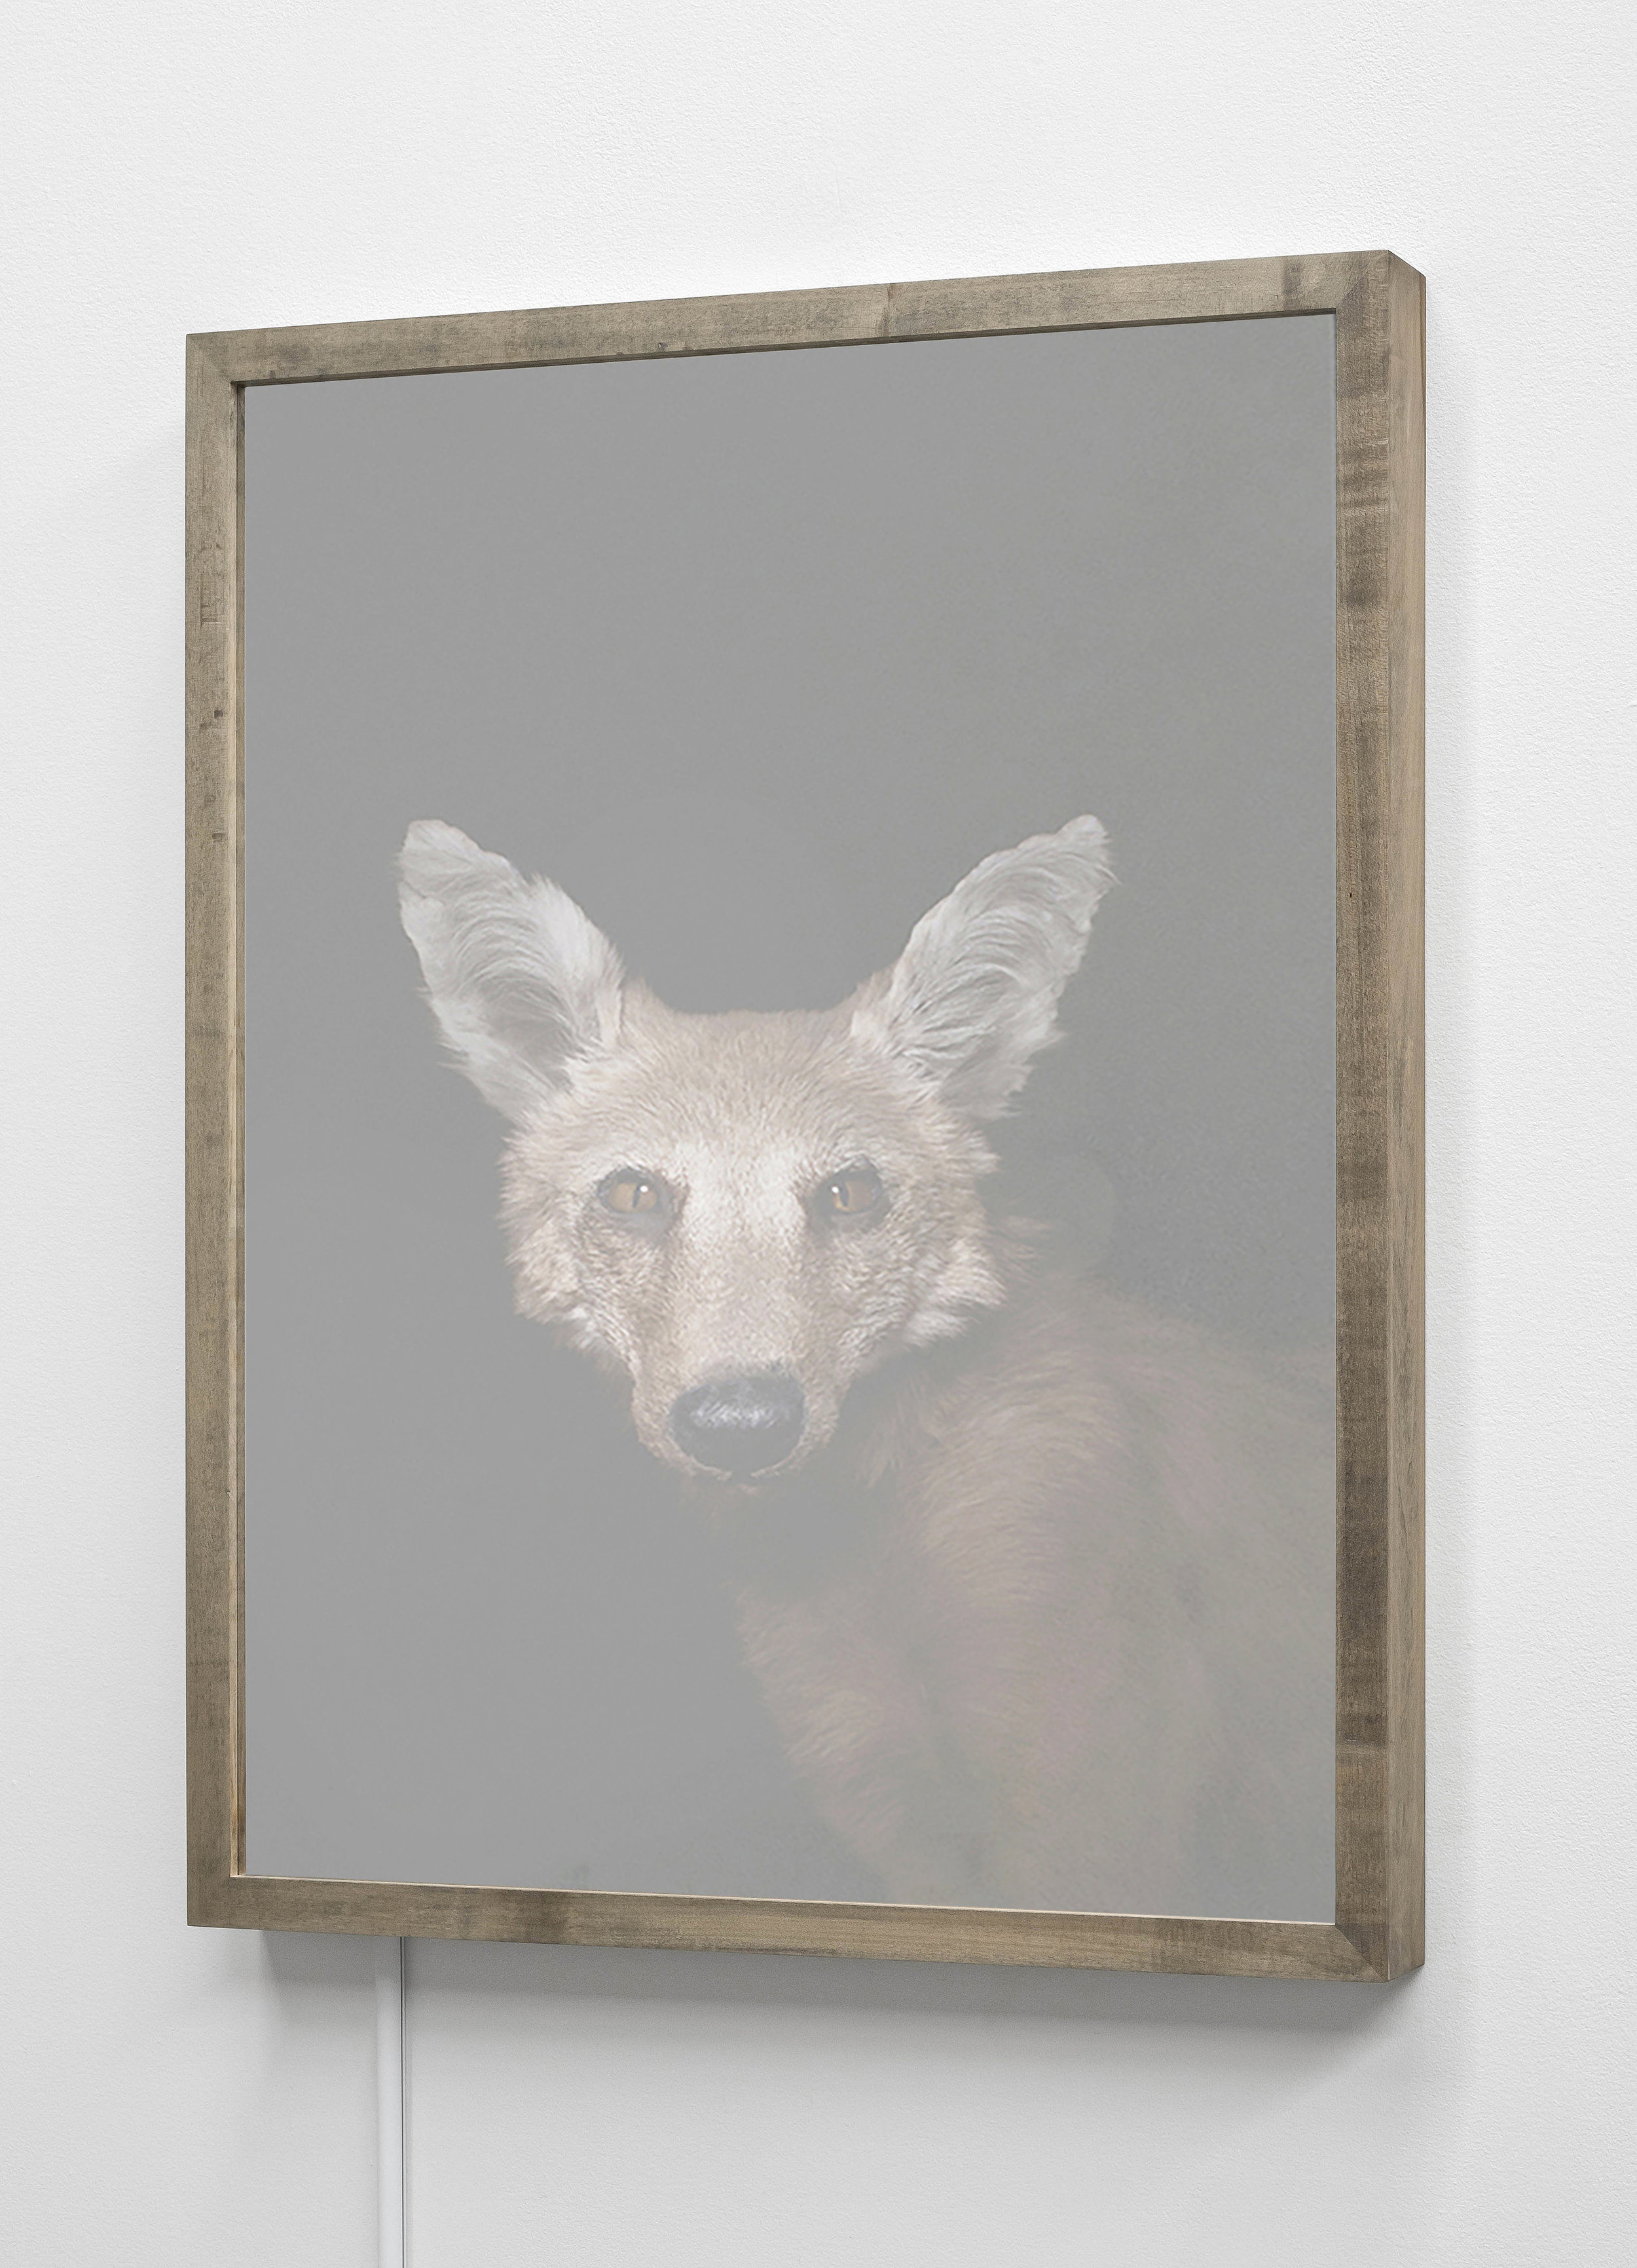 CHRISTINA SEELY  Maned Wolf , Chrysocycon brachyurus - Near Threatened Kinetic Mirrored Lightbox  Available sizes: 30 x 24 in | Edition of 3 + 1AP 20 x 16 in | Edition of 3 + 1AP